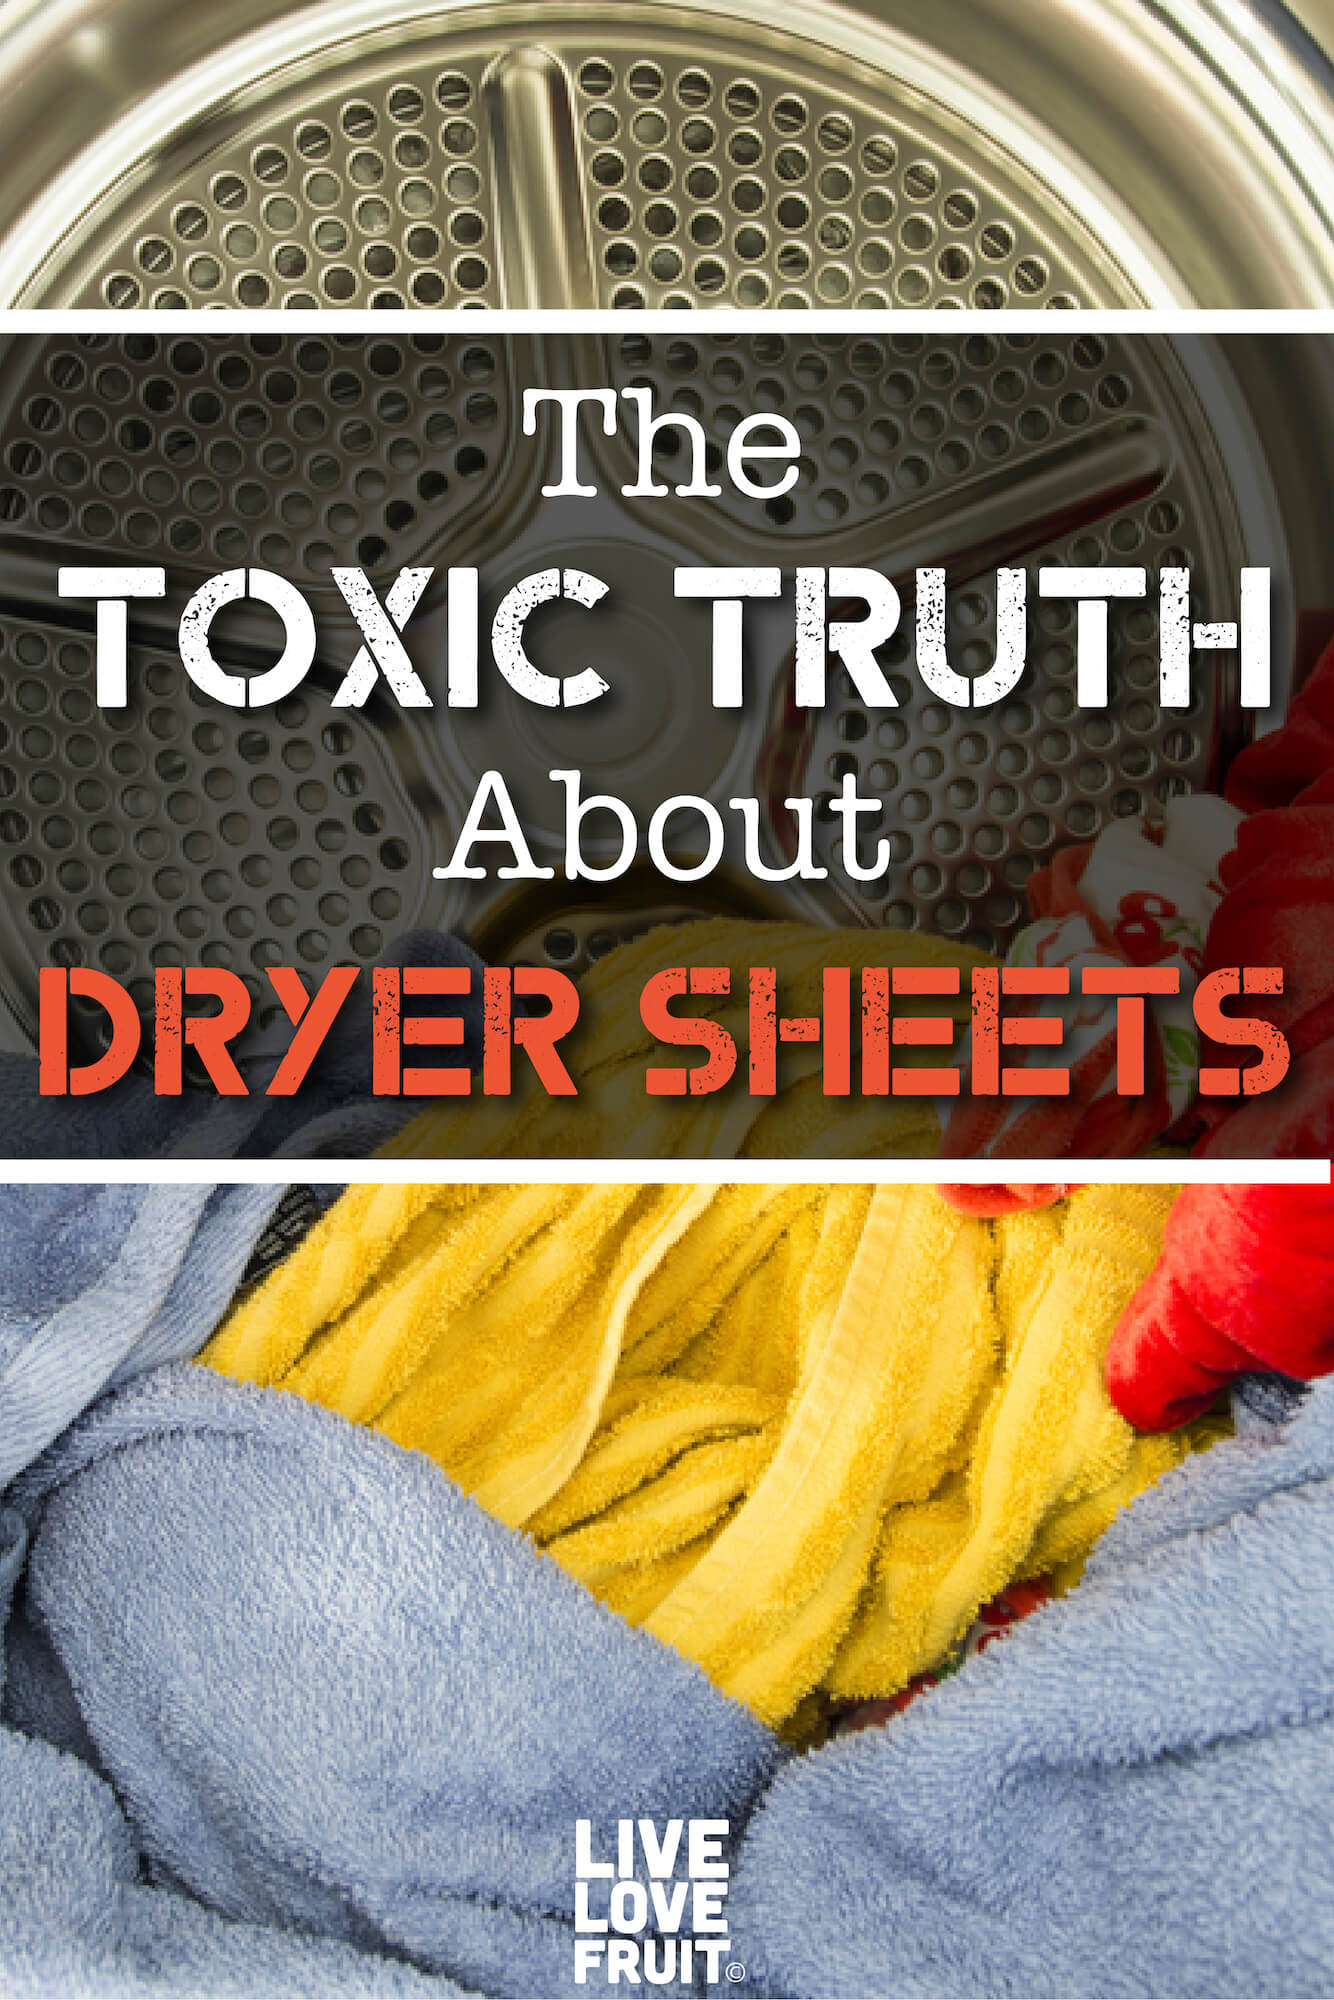 clothing in dryer with text - the toxic truth about dryer sheets